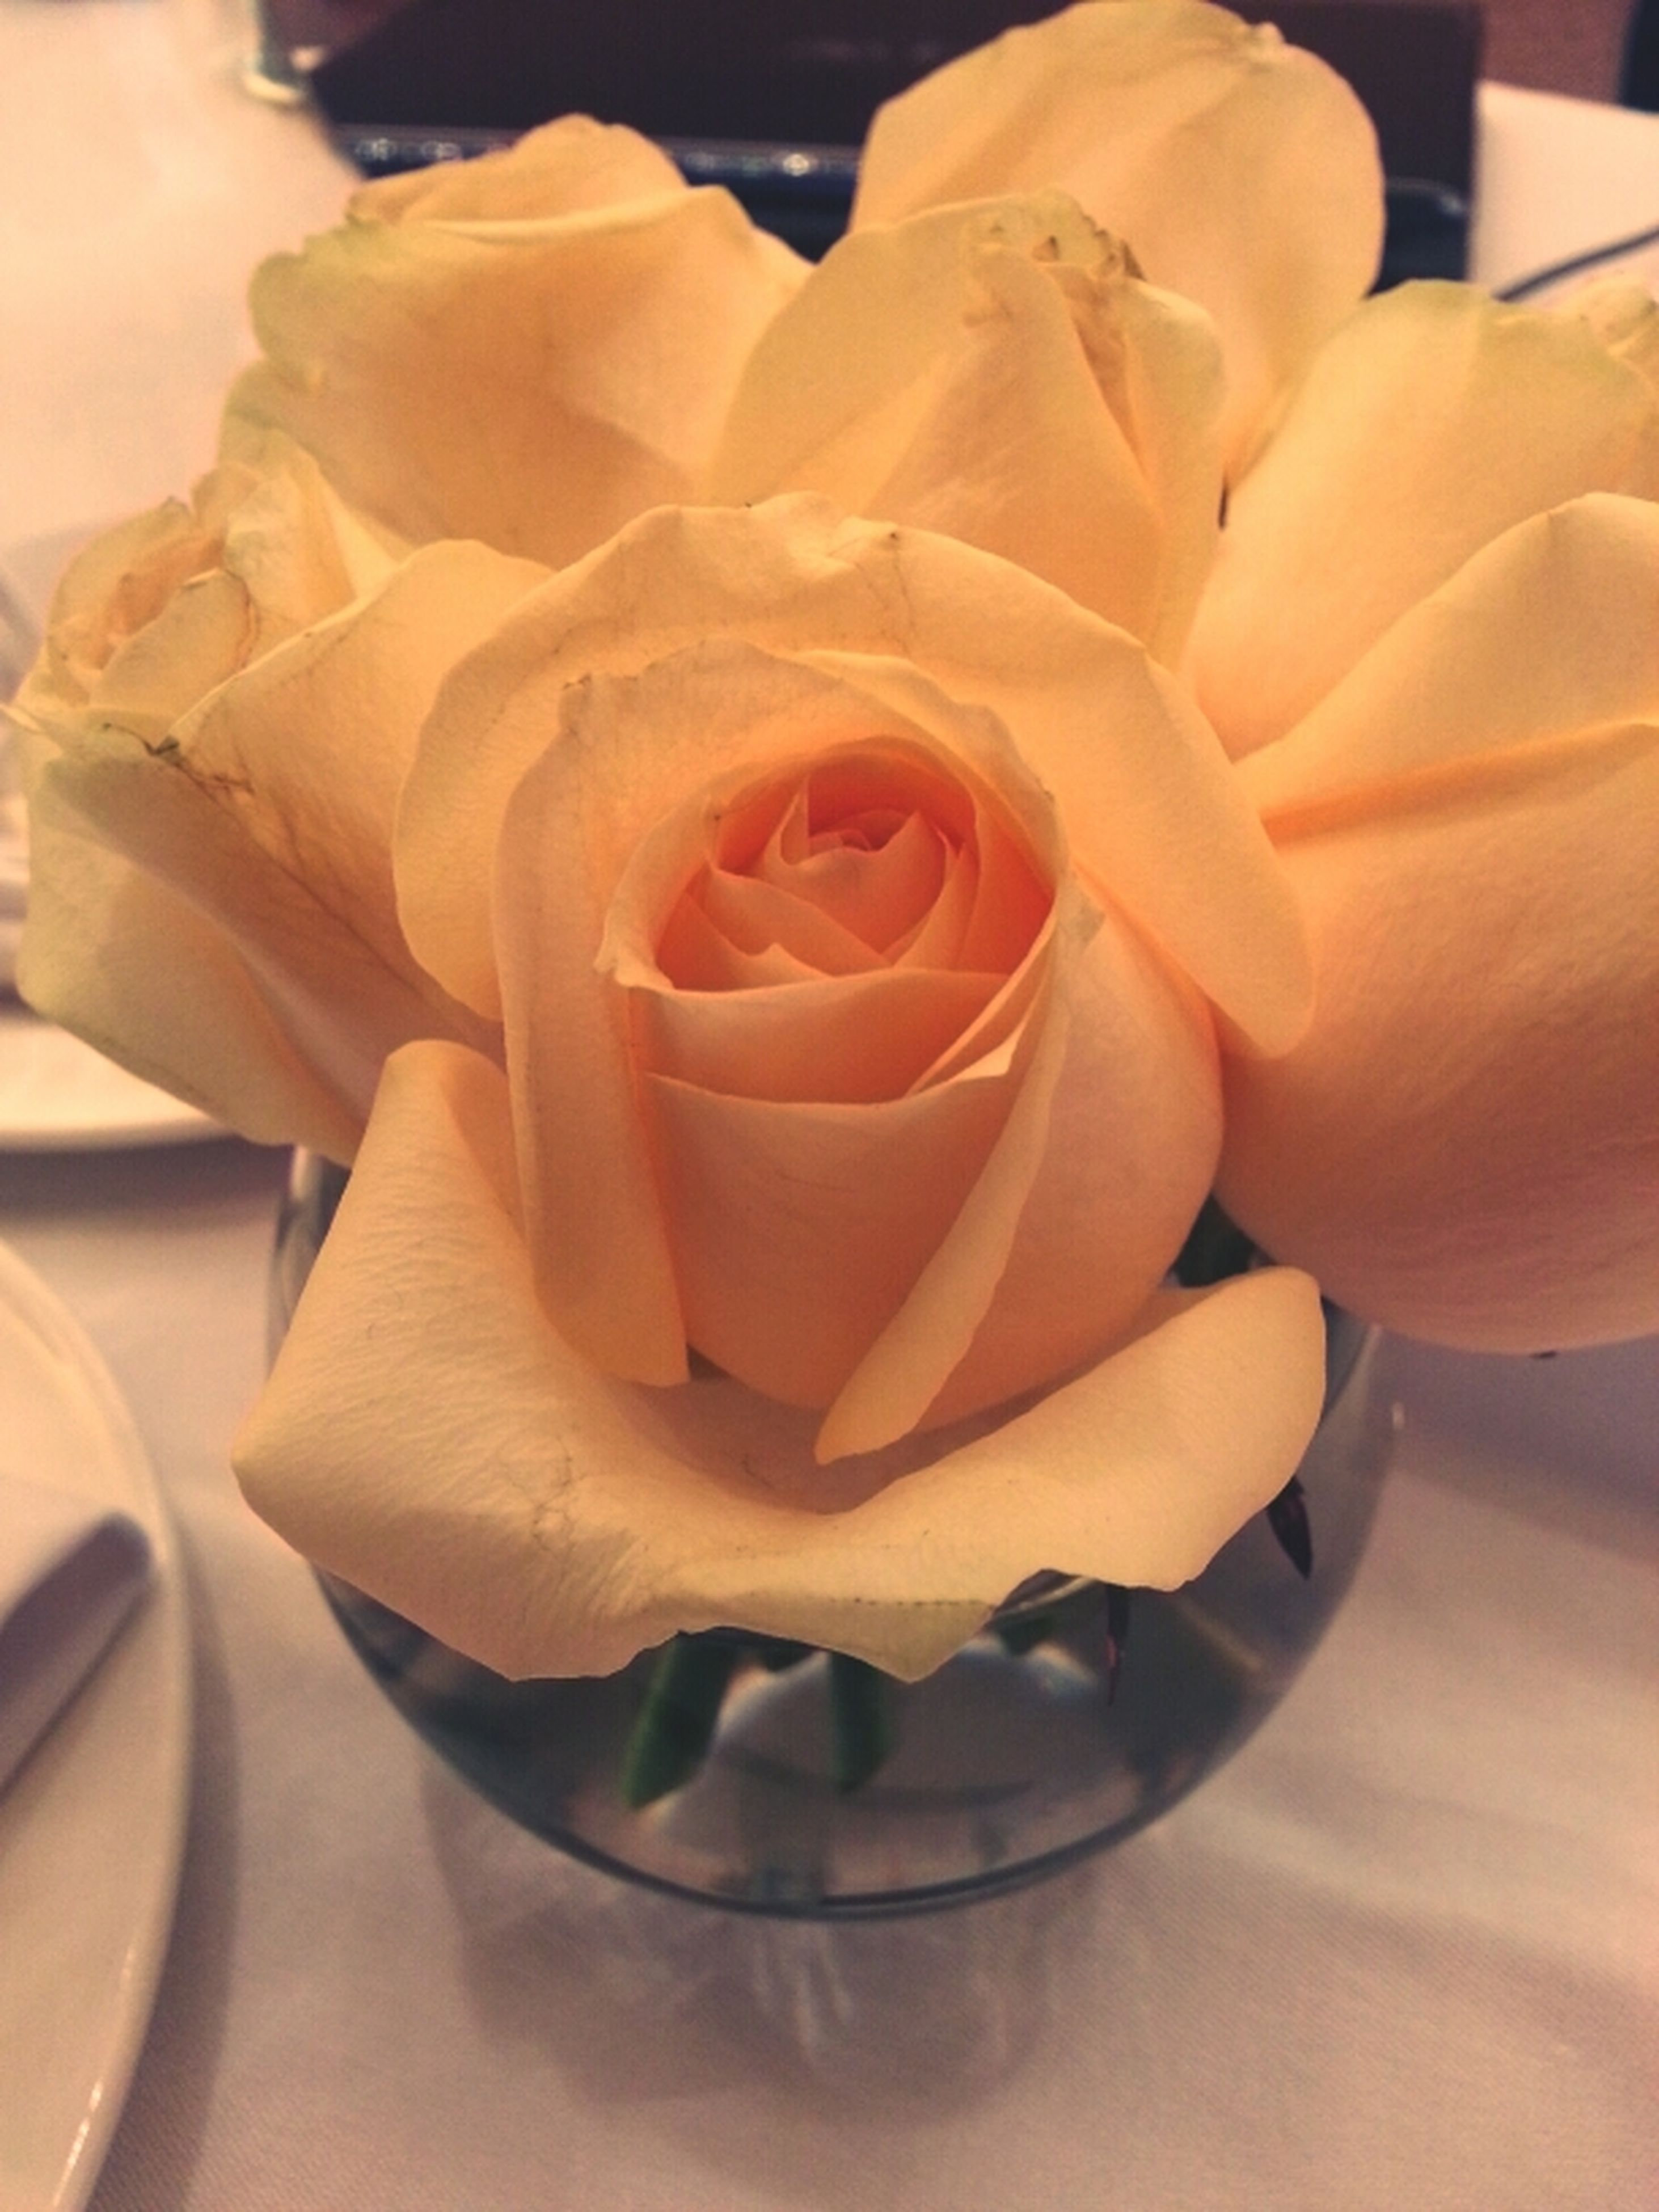 flower, indoors, freshness, petal, rose - flower, flower head, close-up, fragility, vase, table, rose, beauty in nature, still life, no people, single flower, high angle view, focus on foreground, decoration, nature, yellow